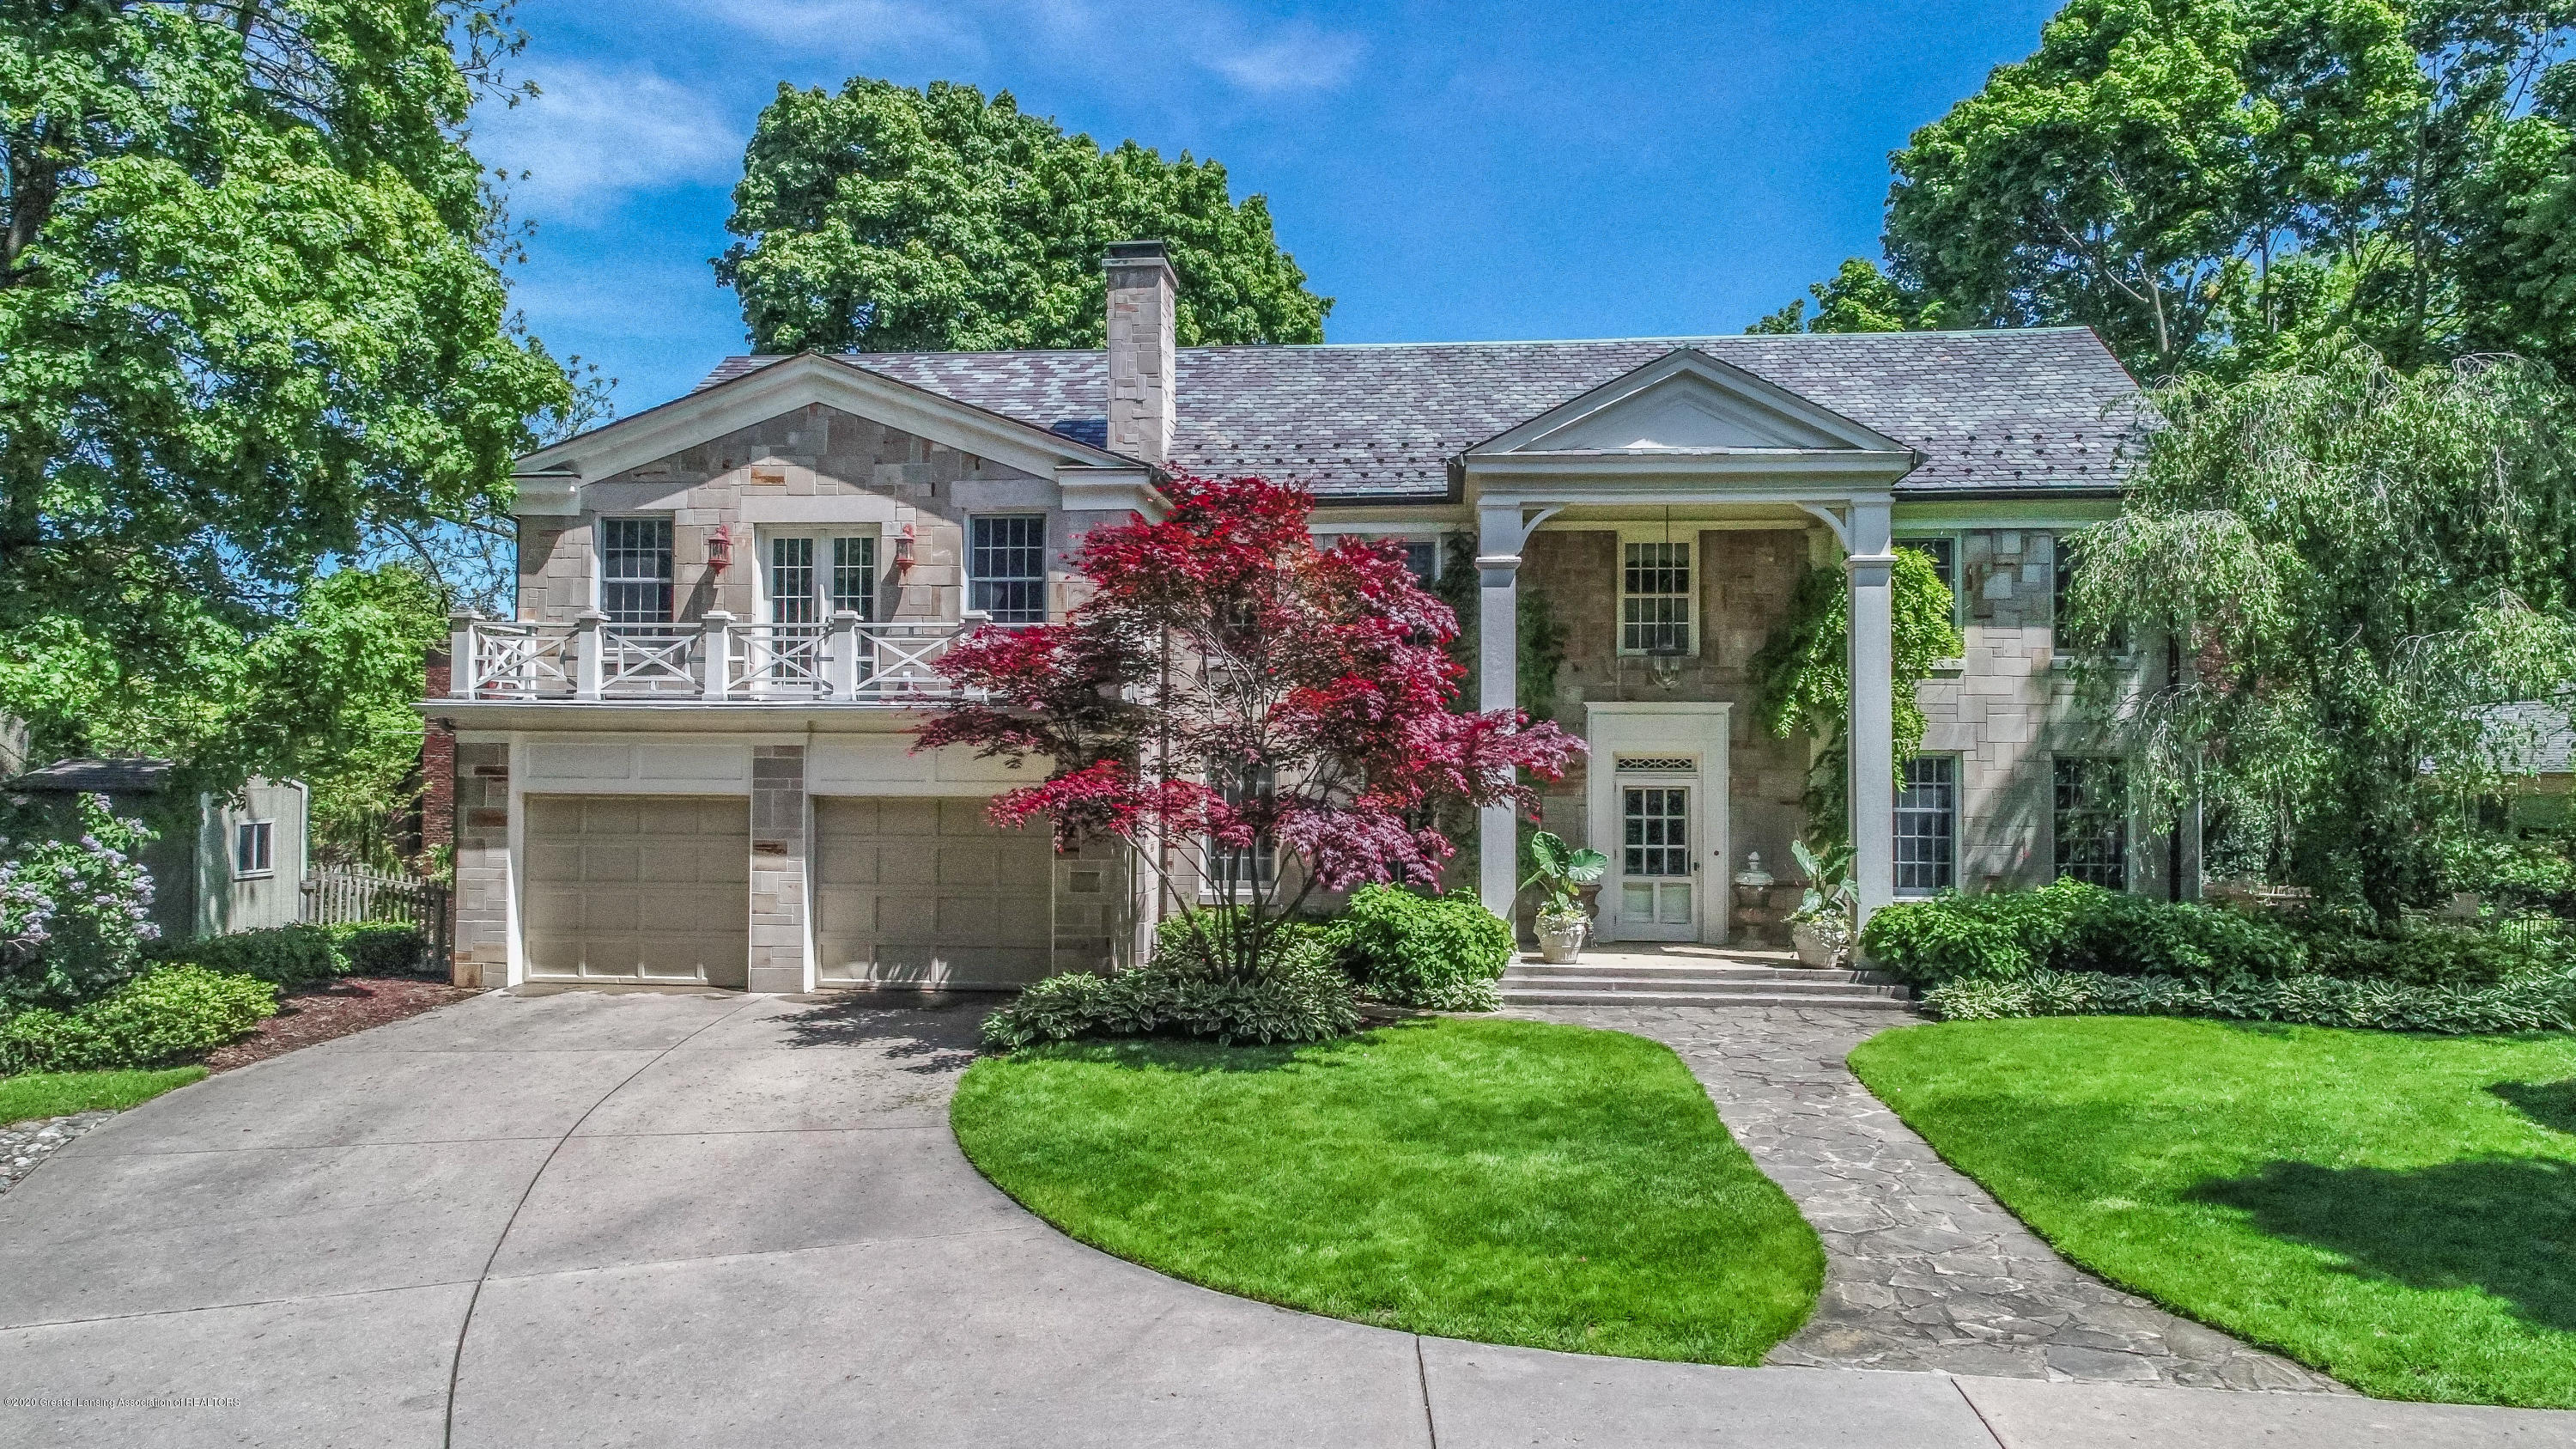 1230 W Grand River Ave - Front - 1